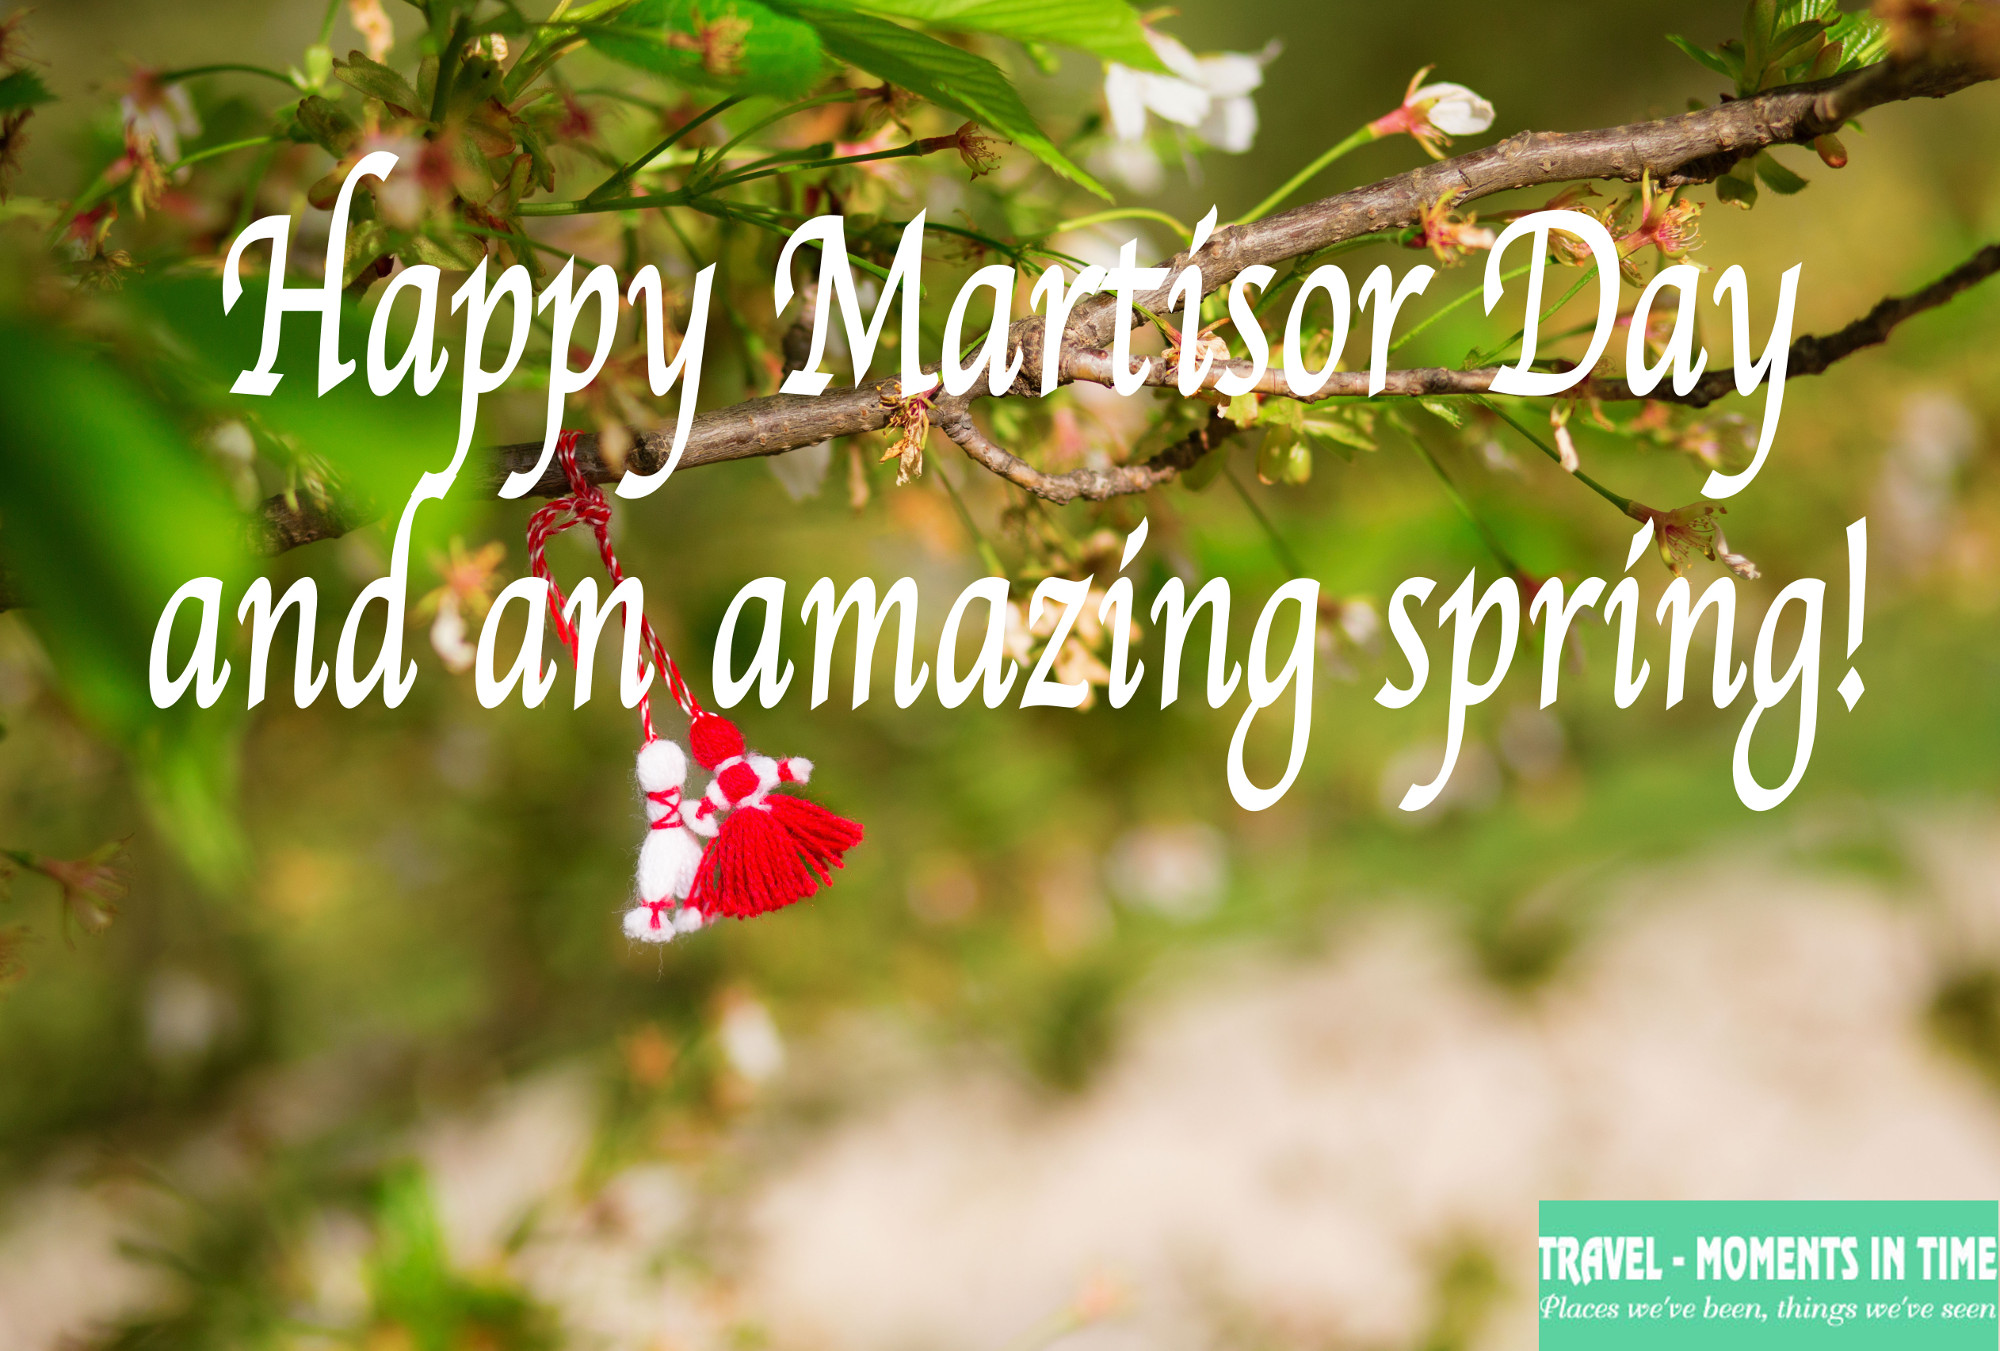 Happy Martisor Day and a wonderful spring!